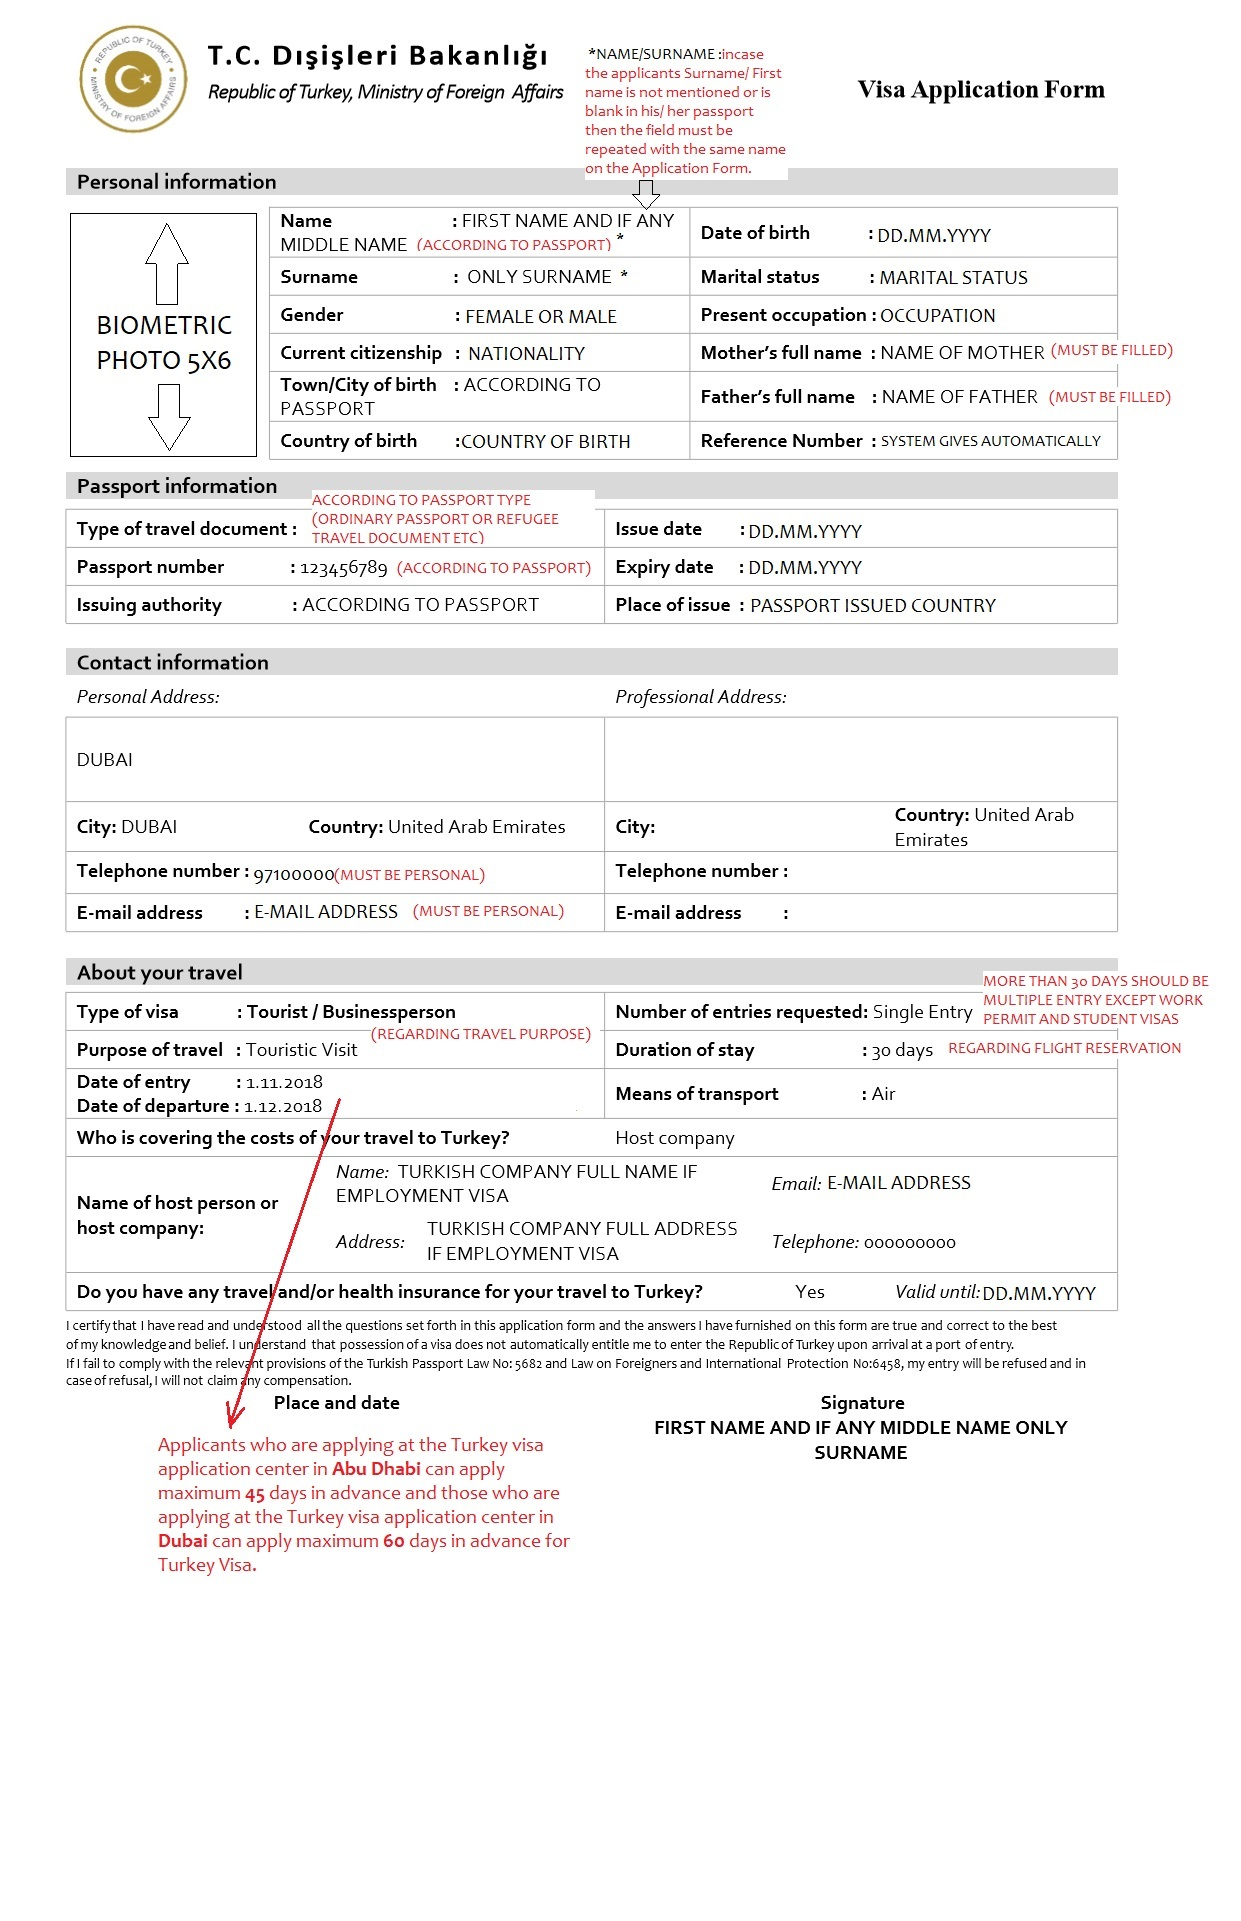 Turkey Visa Information In Uae Visa Types Single Entry Tourism